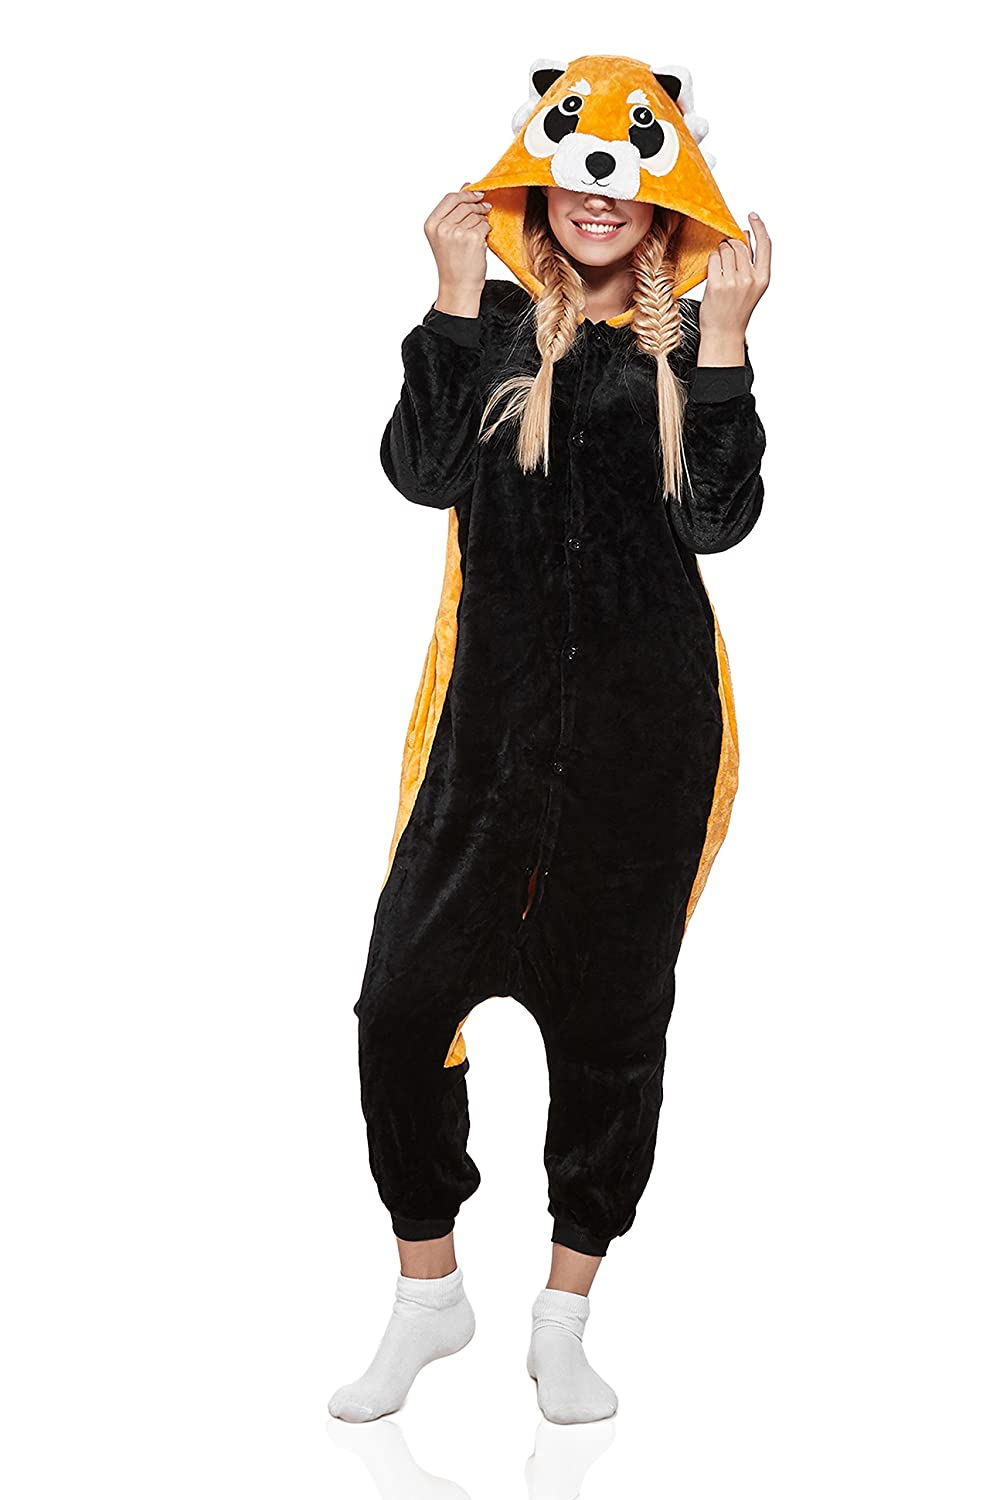 Image of: Kigurumi Animal Nothing But Love Adult Red Panda Raccoon Kigurumi Animal Onesie Pajamas Plush Onsie Cosplay Costume medium Black With Yellow Amazoncomau Fashion Kigurumica Nothing But Love Adult Red Panda Raccoon Kigurumi Animal Onesie